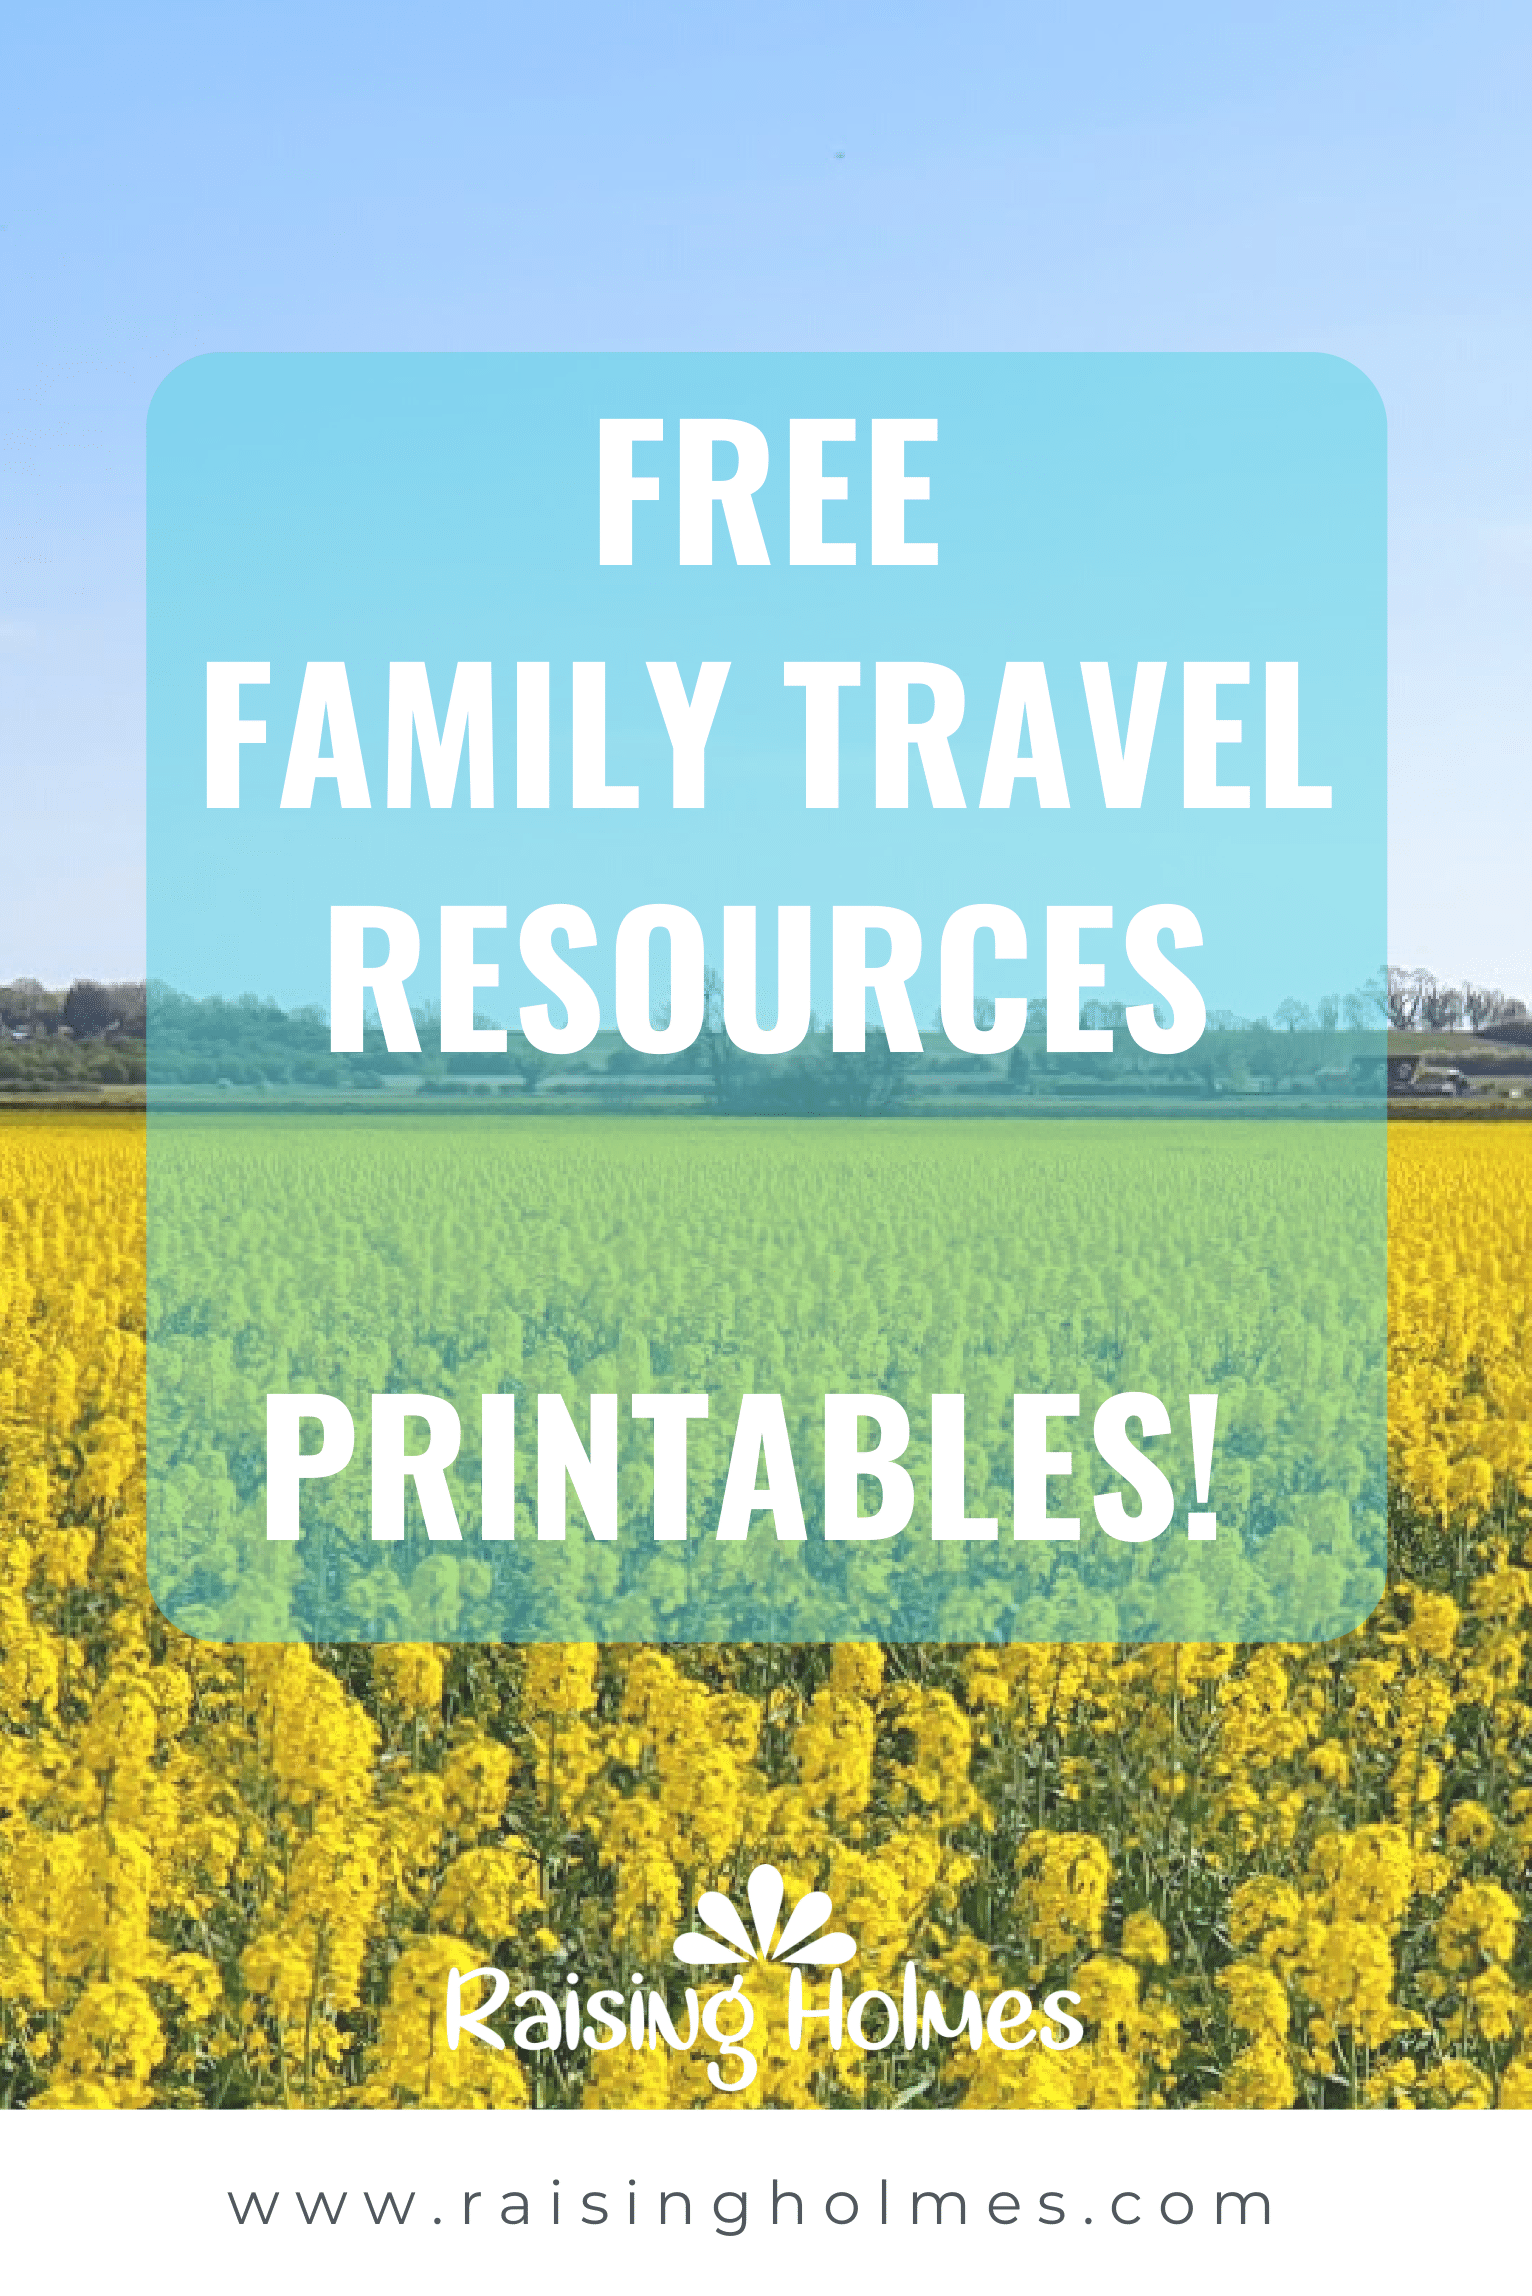 Free Family Travel Resources - Printables!